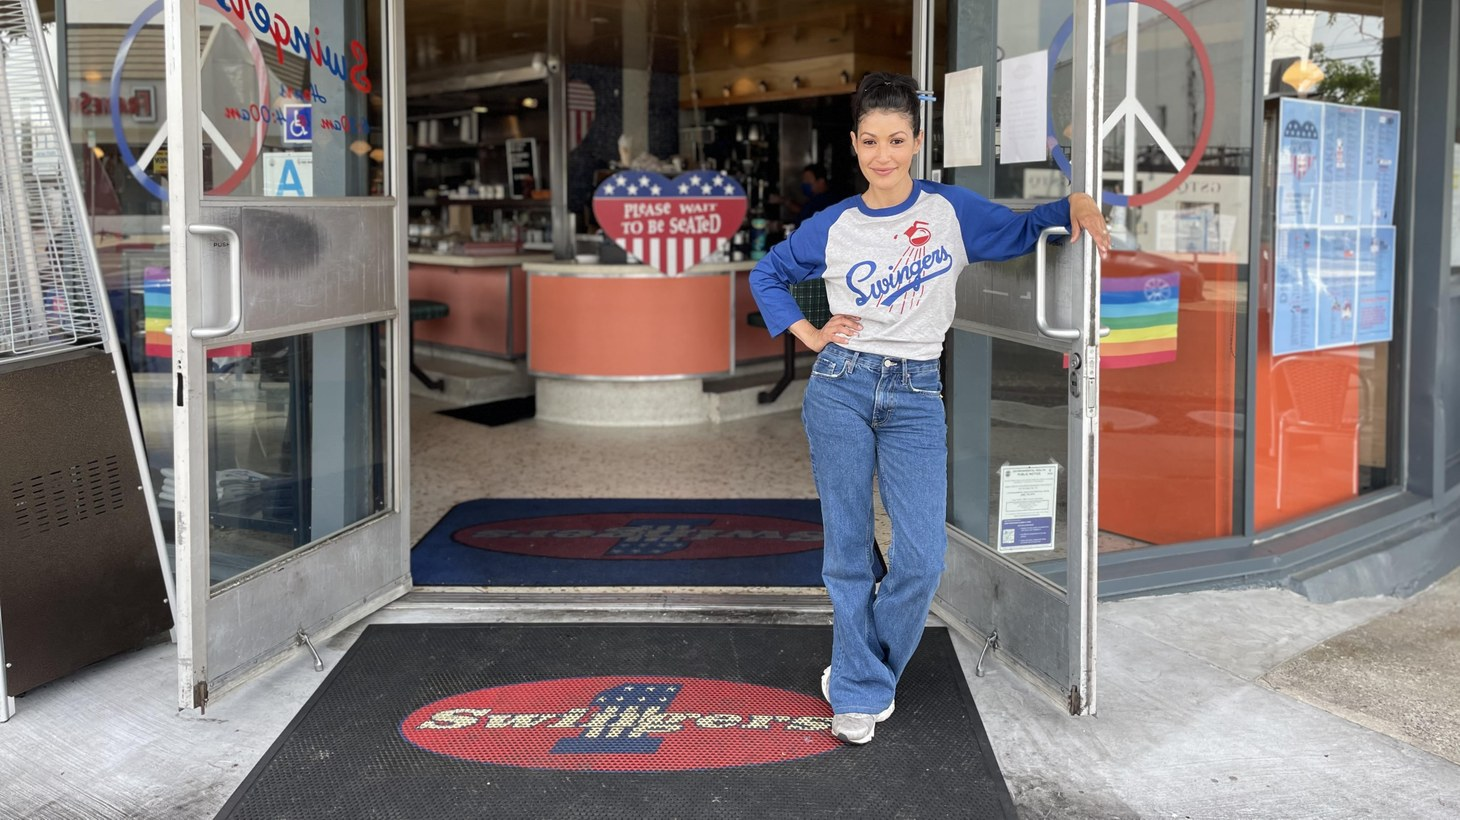 After Swingers closed last year, Stephanie Wilson raised funds to buy the place and reopen.